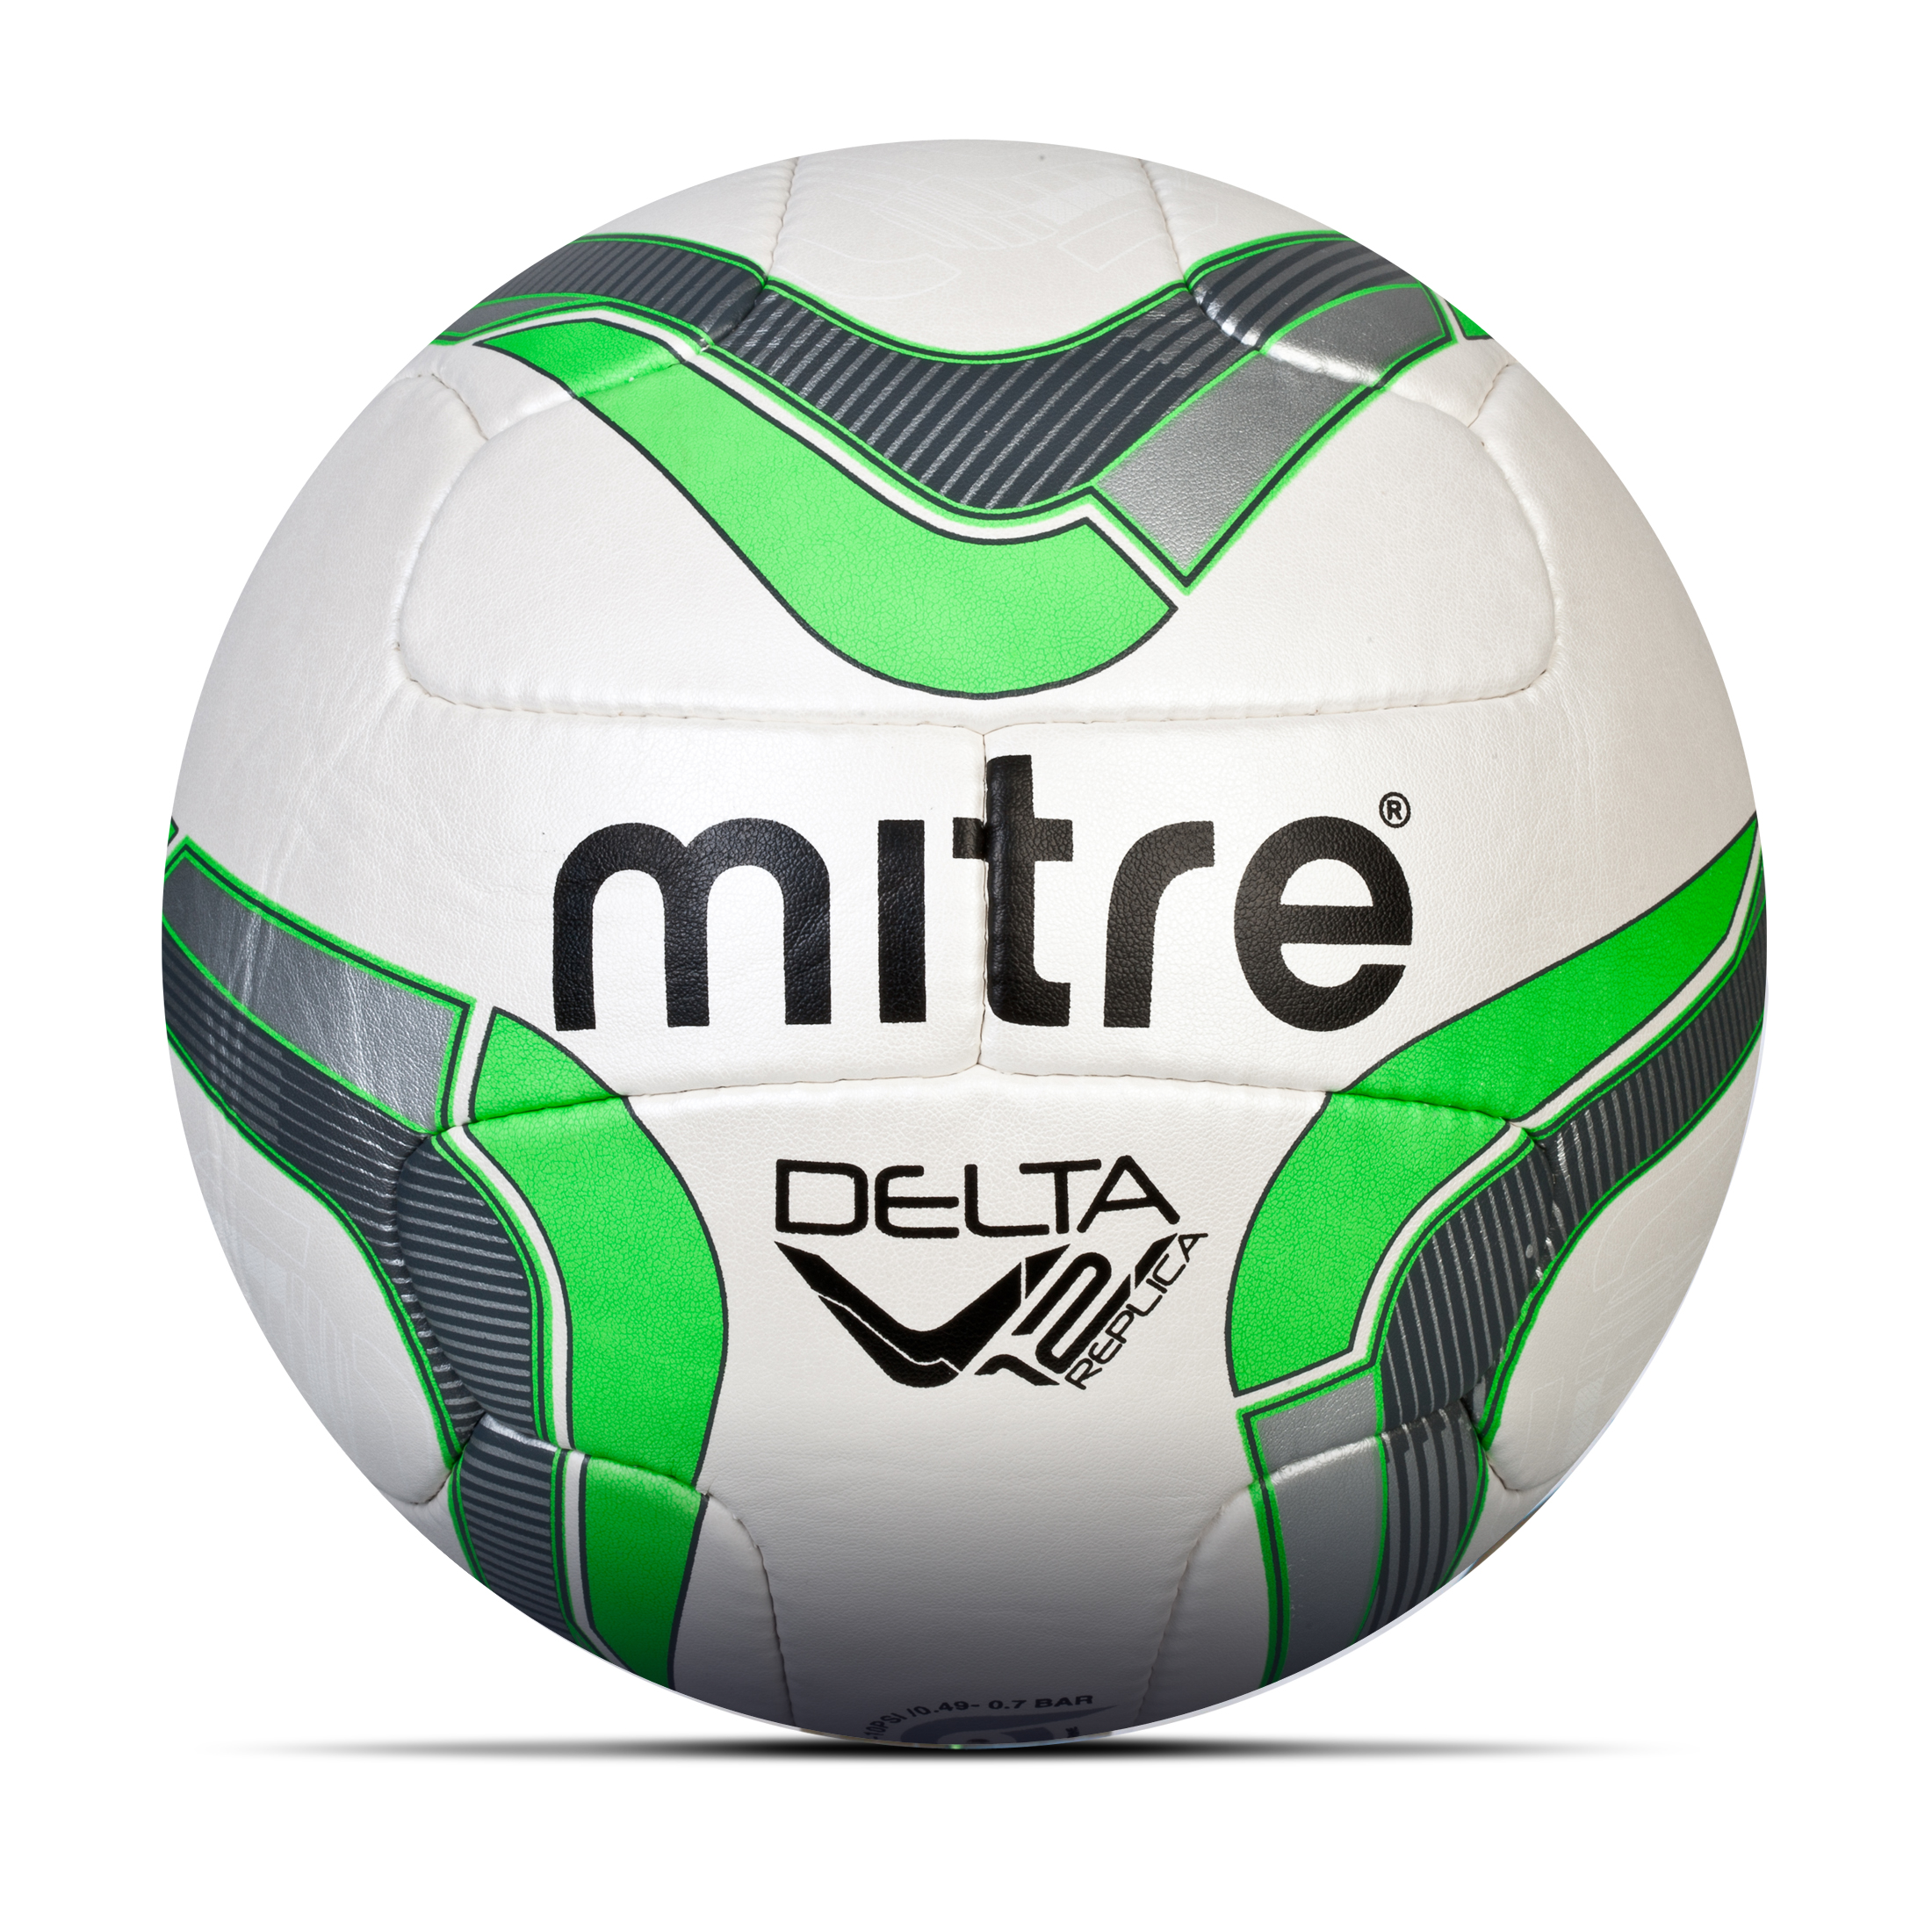 Mitre Delta V12 Replica Football - 5 White